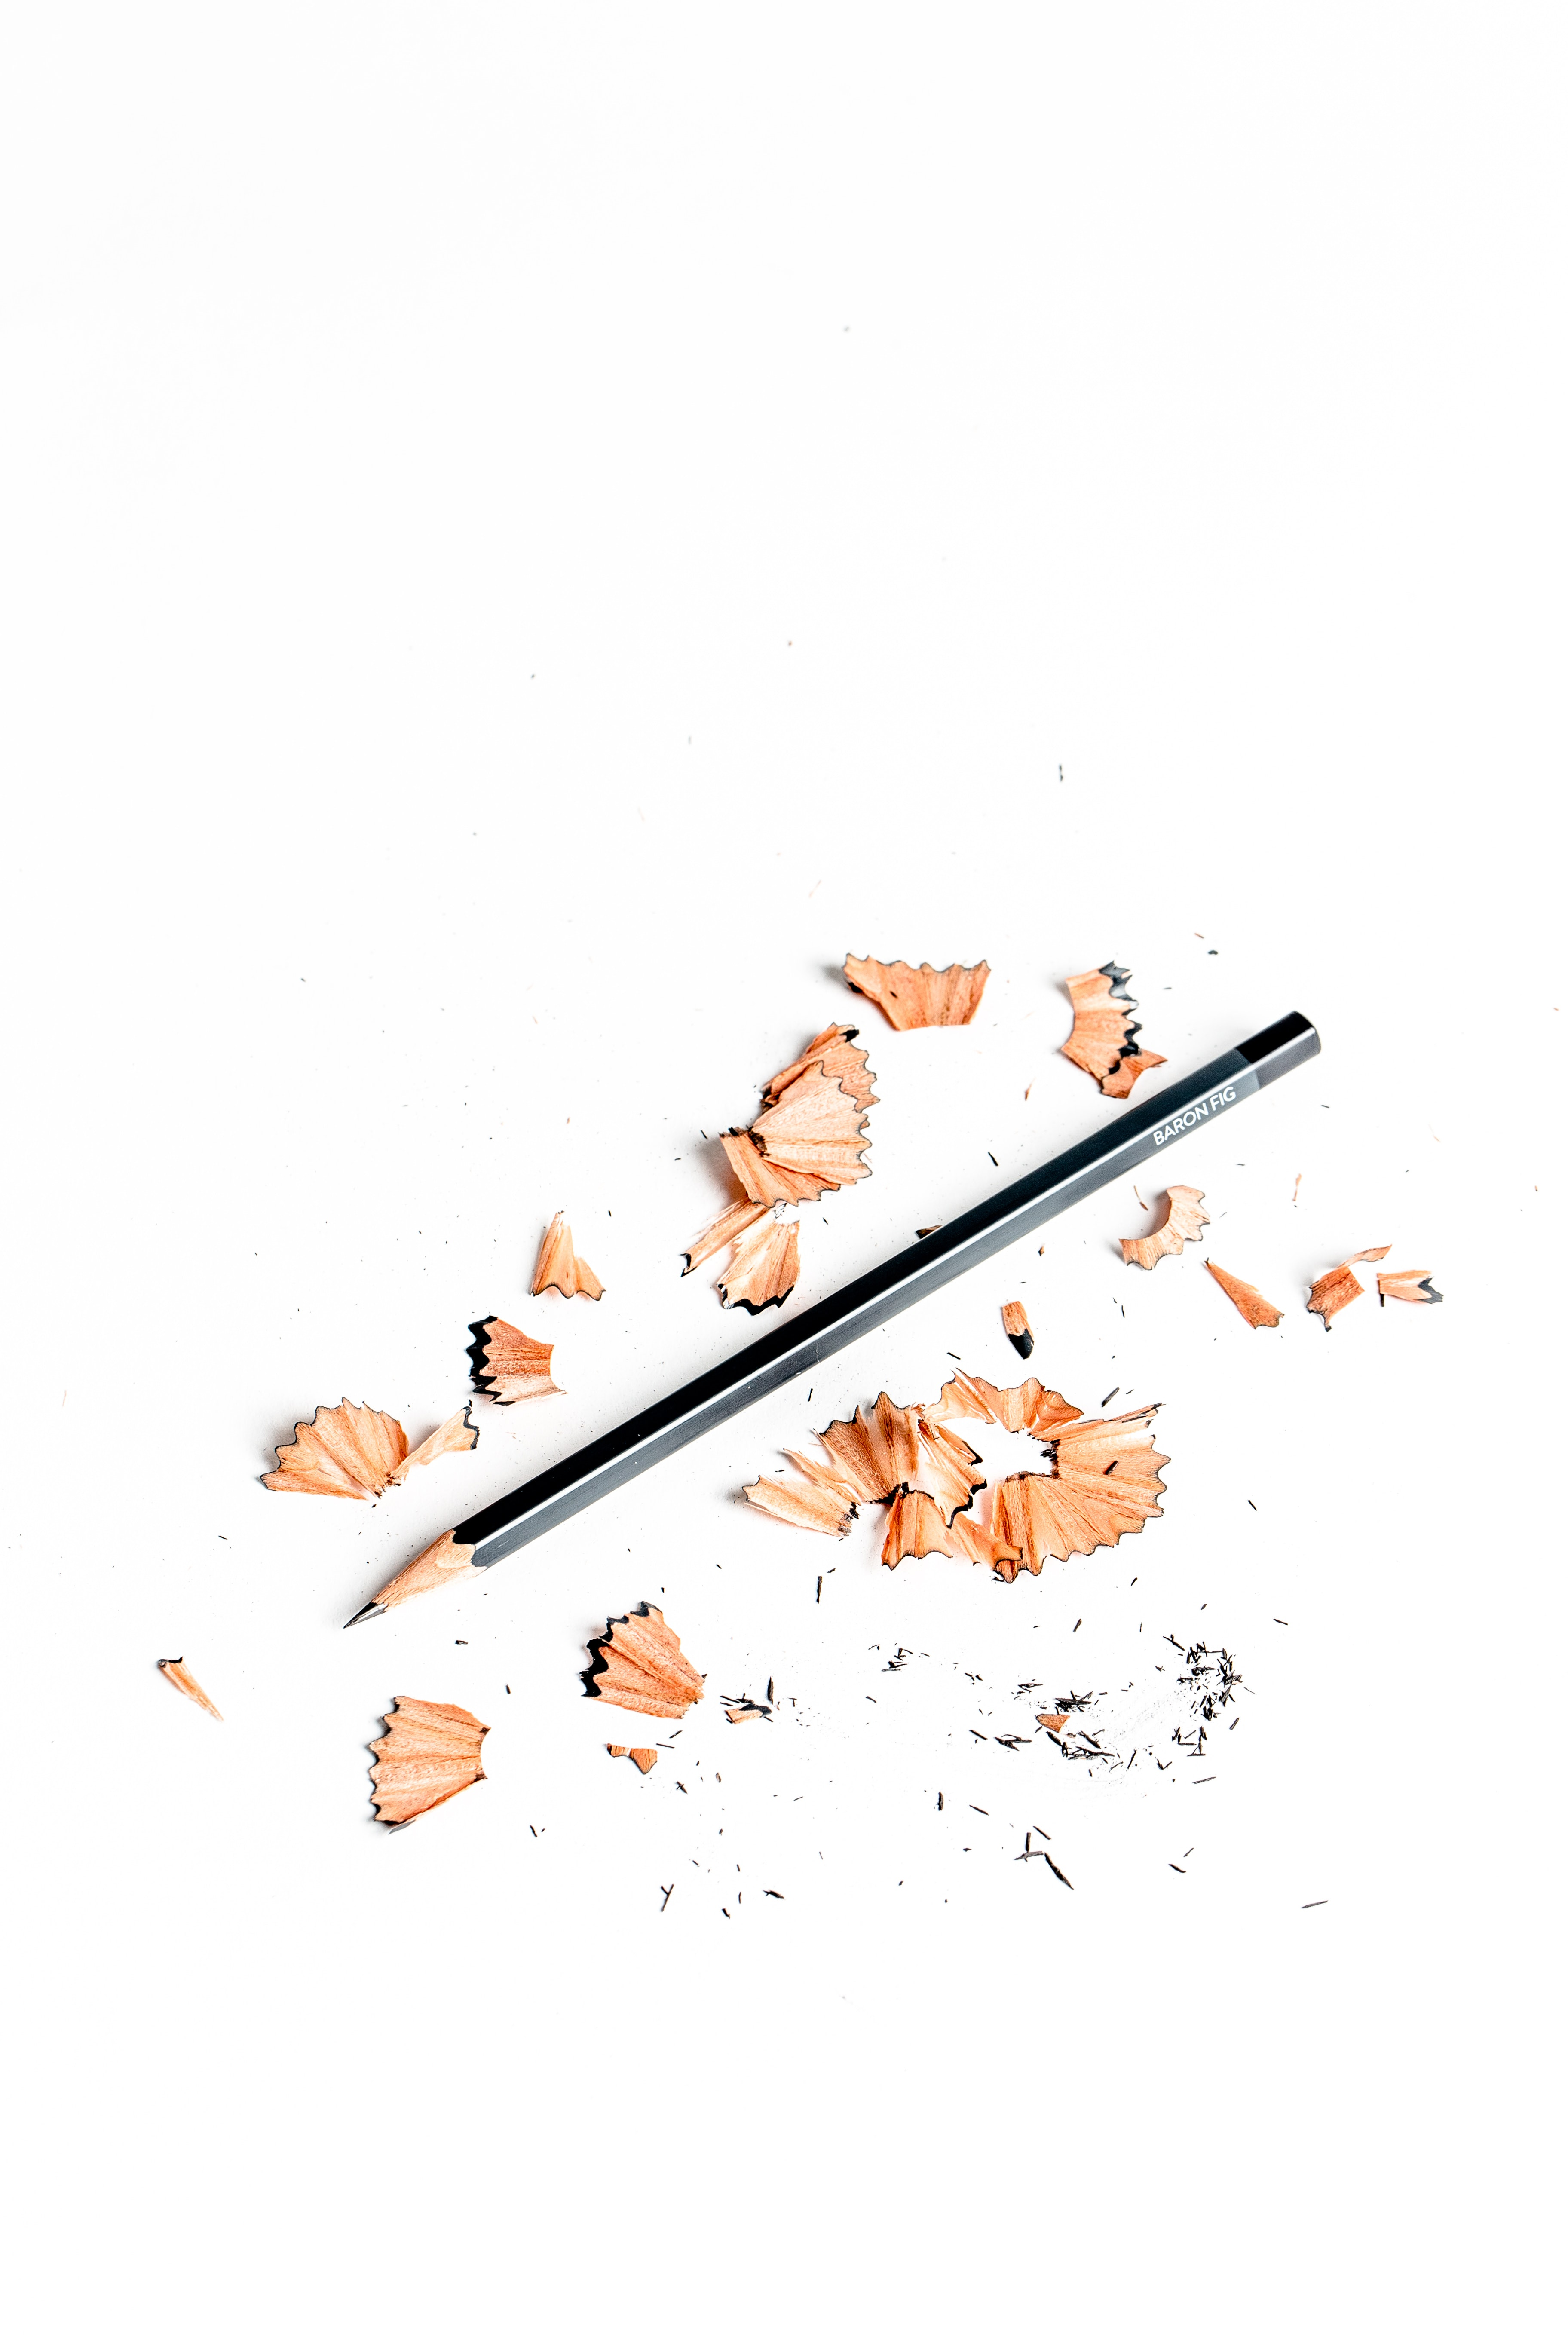 black pencil surrounded by pencil husk